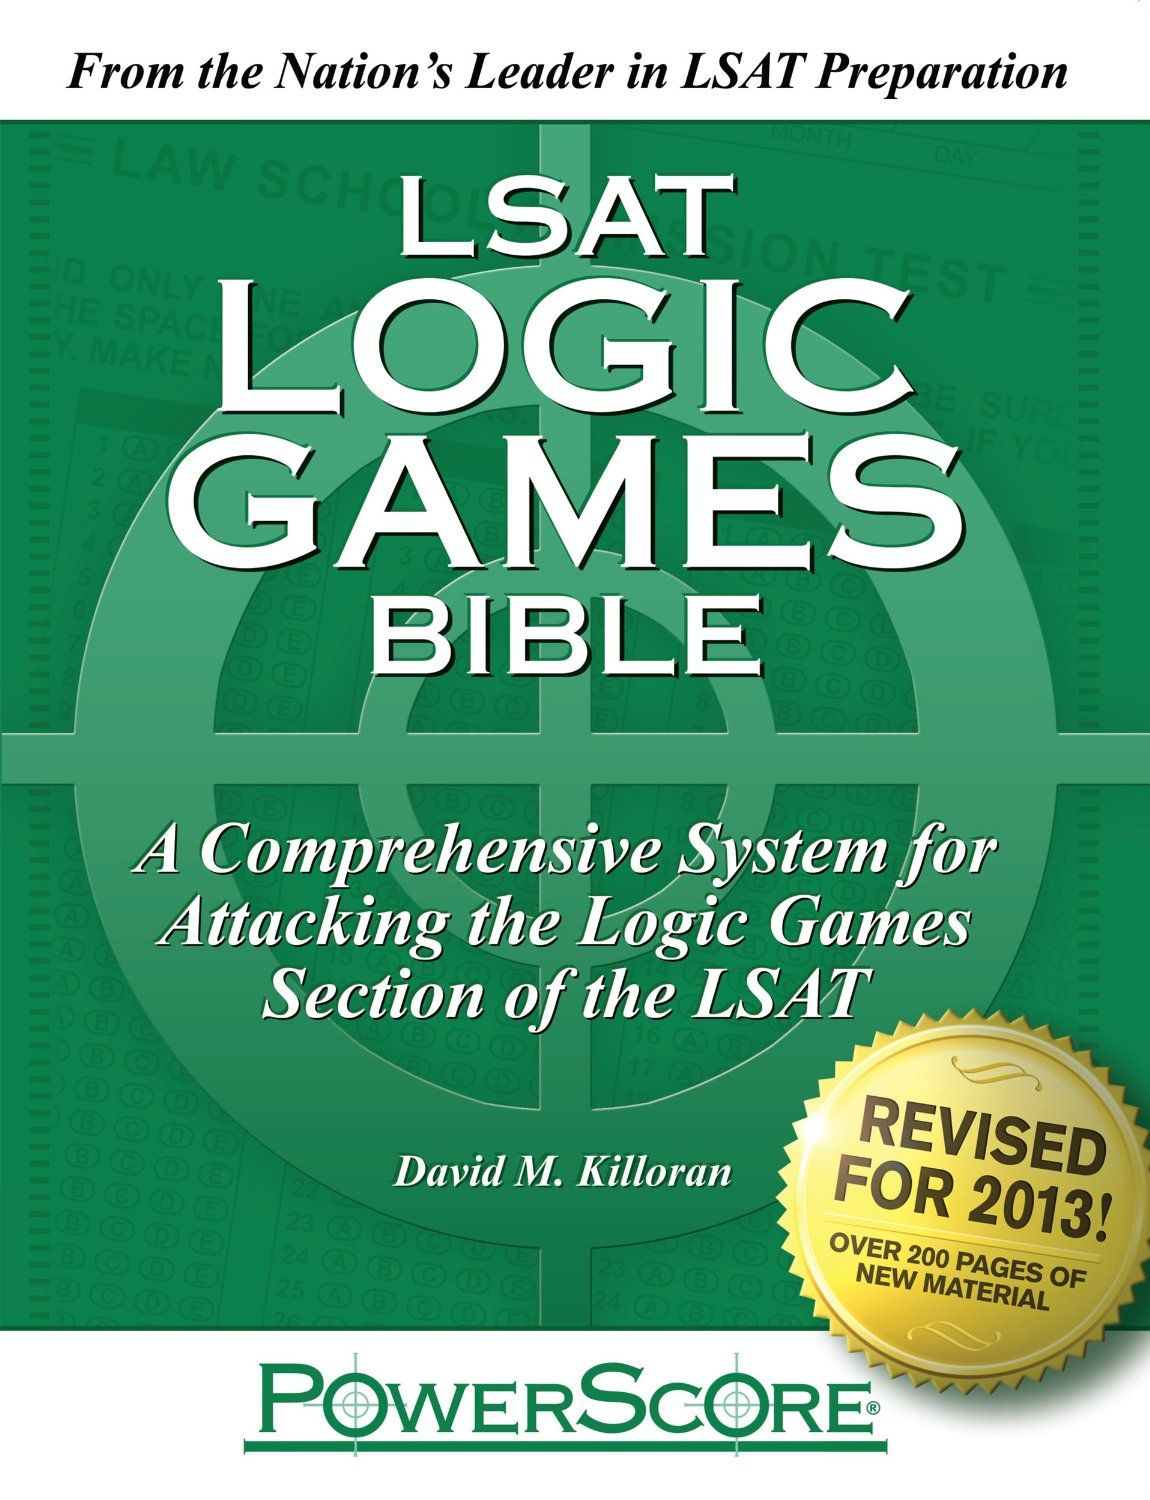 The lsat logic games bible the best lsat book for logic games the lsat logic games bible the best lsat book for logic games https malvernweather